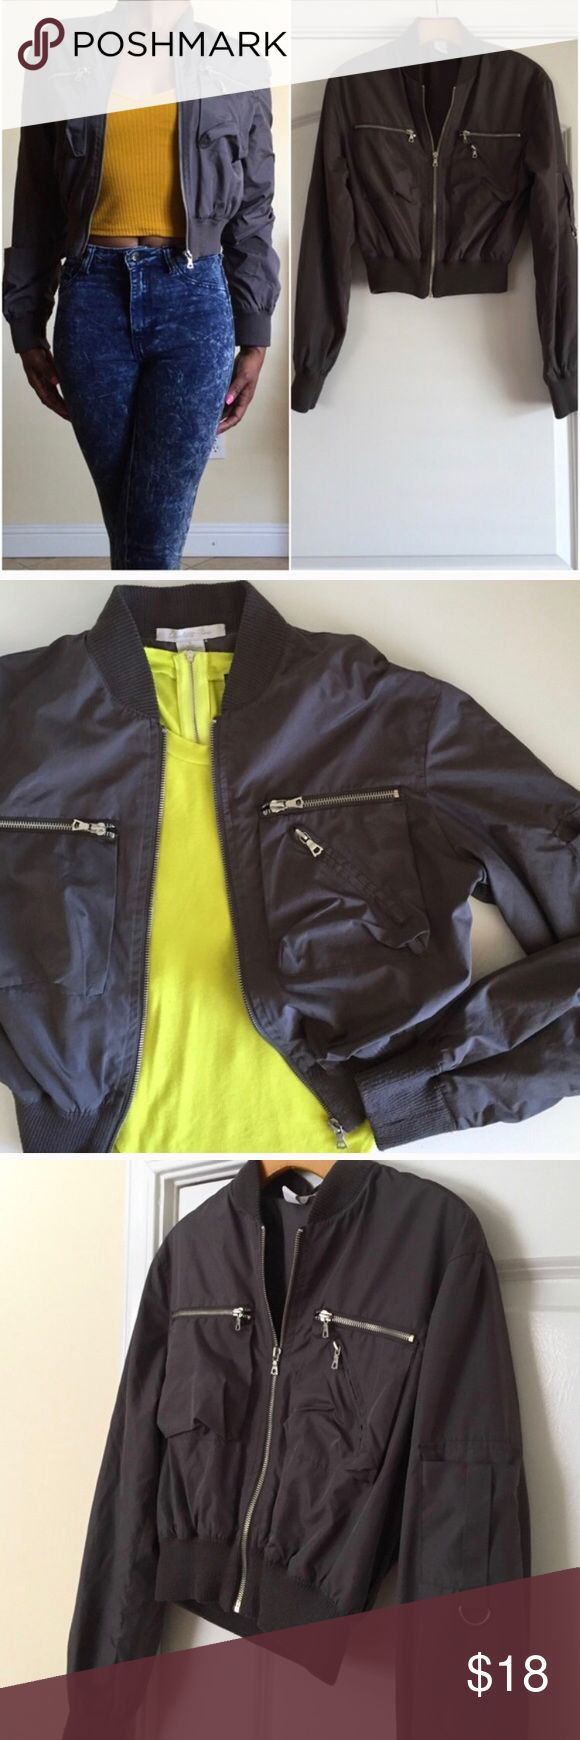 Gray Cropped Bomber Jacket Gray Bomber with silver zip up pockets. Junior fit with cropped style. Pockets on the chest that zip up. D ring k pocket on the arm. Light weight jacket. Like new condition. Wet Seal Jackets & Coats Utility Jackets